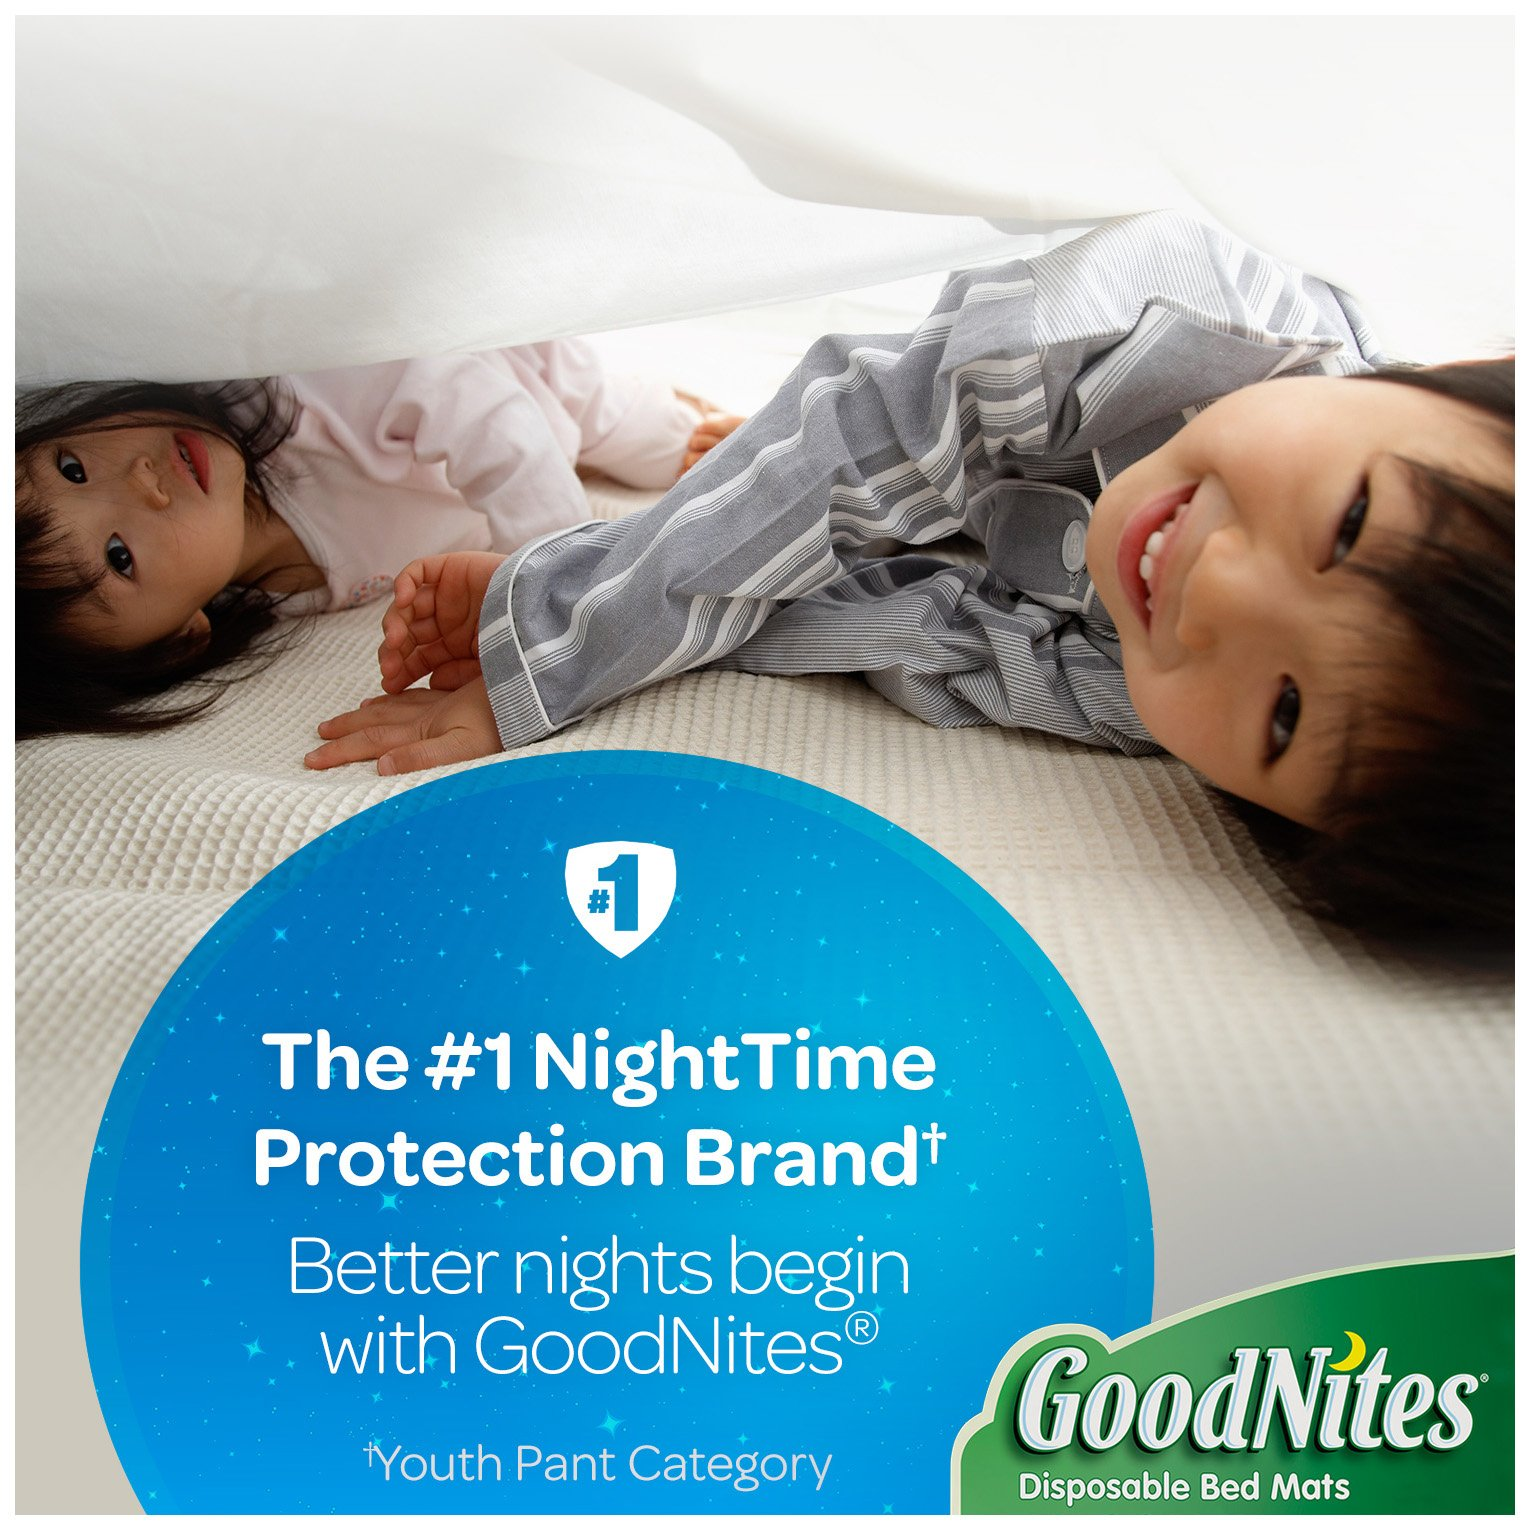 GoodNites Disposable Bed Mats, 36 Count by GoodNites (Image #2)